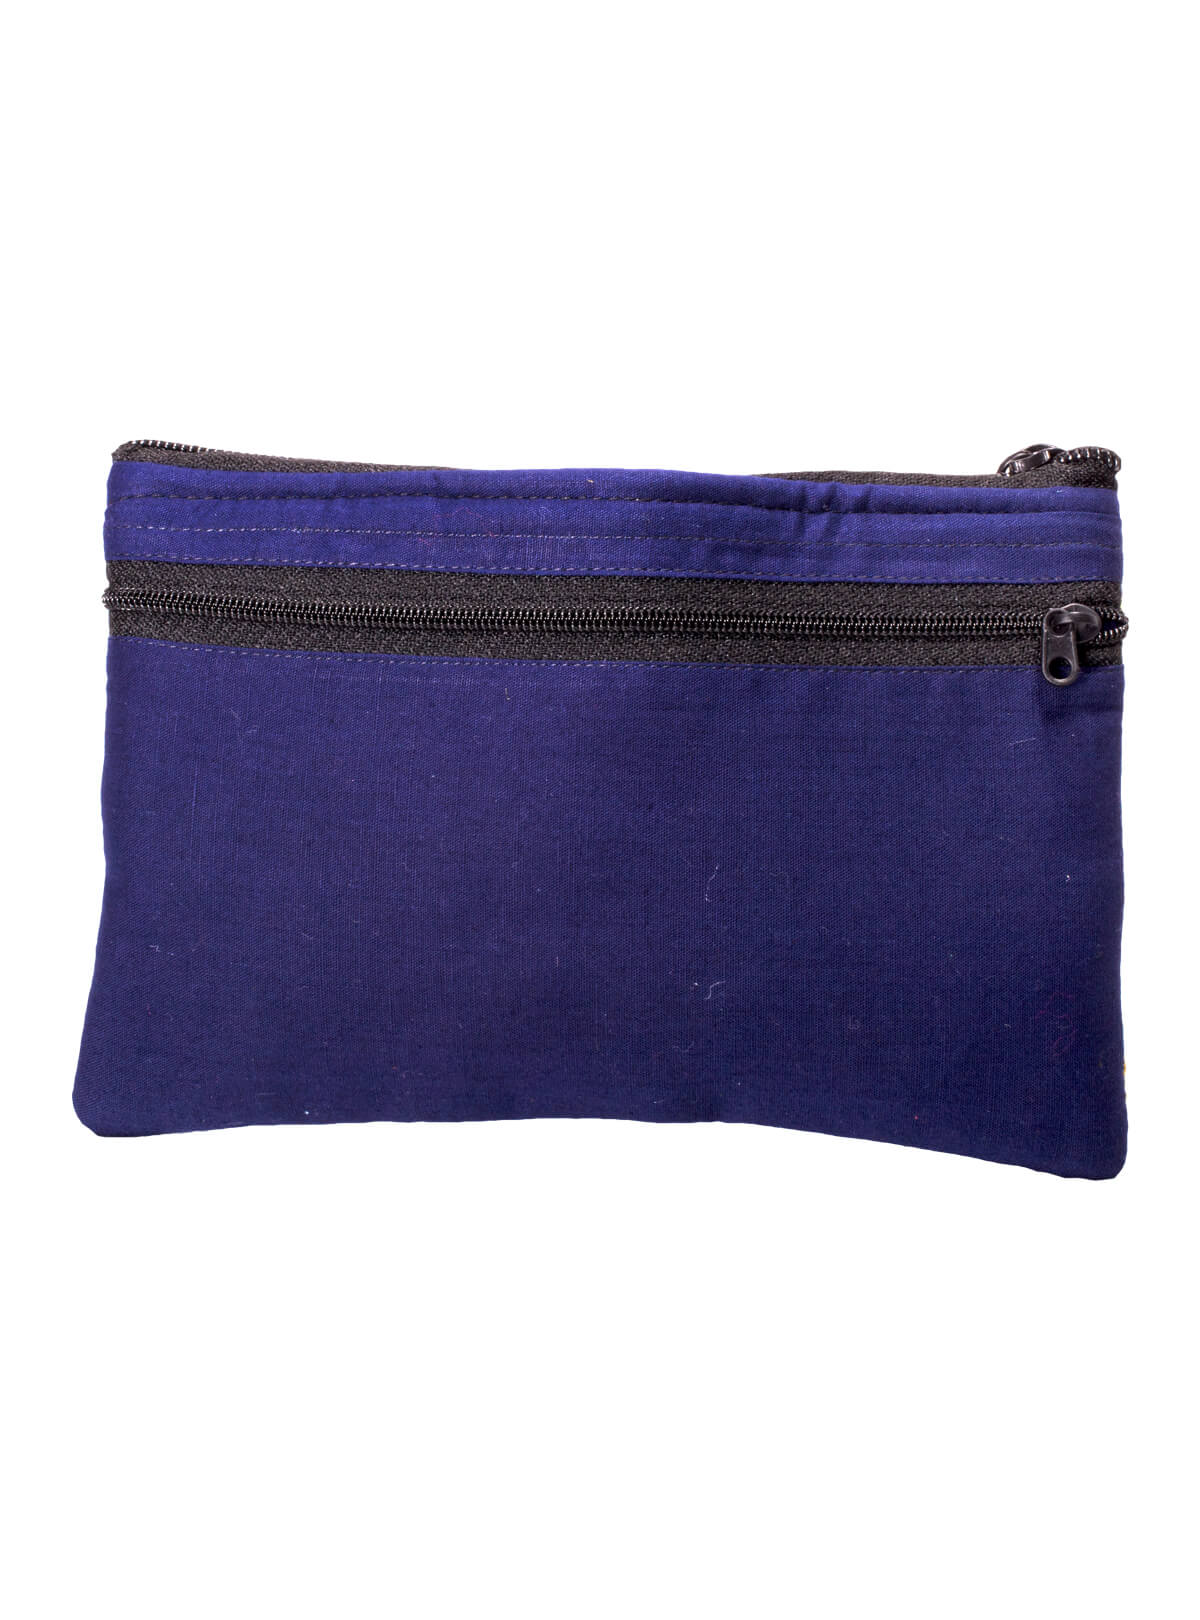 Blue Cotton Ladies Purse